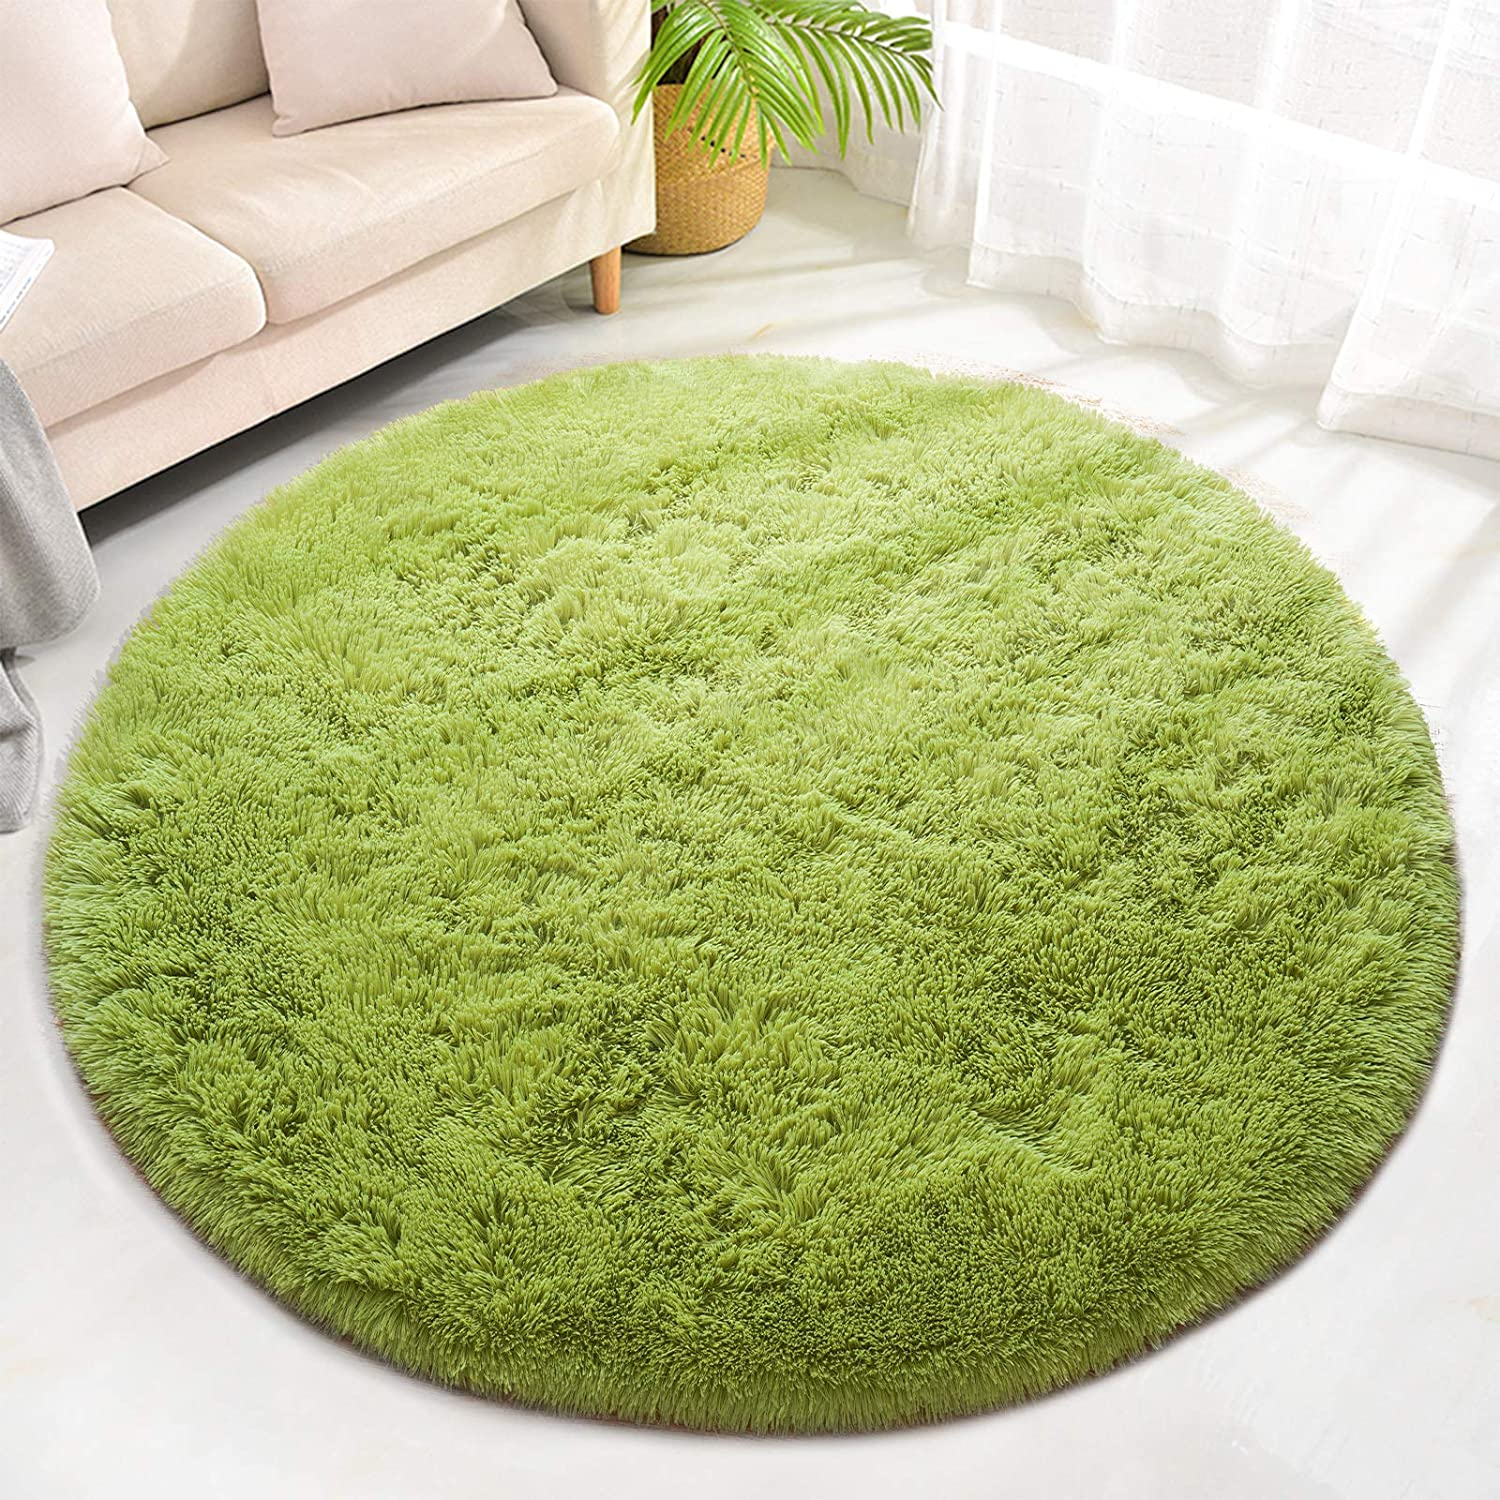 Max 67% OFF ST. BRIDGE Super Soft Round Shaggy Area Manufacturer direct delivery Indoor Fur Rugs Modern